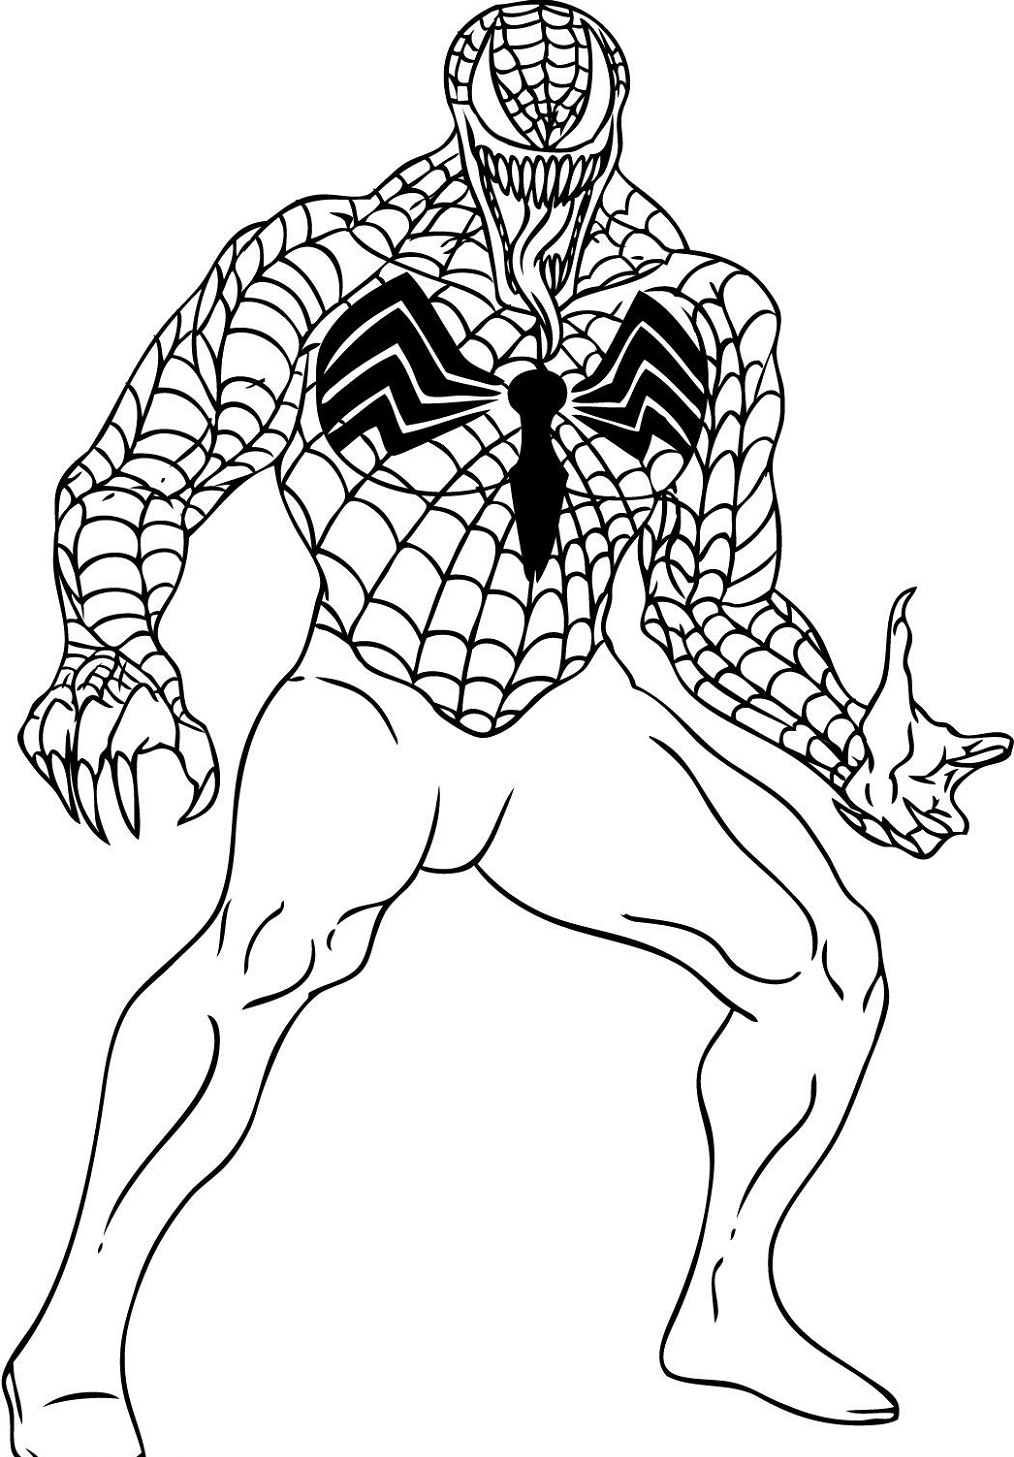 coloring sheet spiderman coloring pages spiderman to print spiderman kids coloring pages coloring sheet pages coloring spiderman